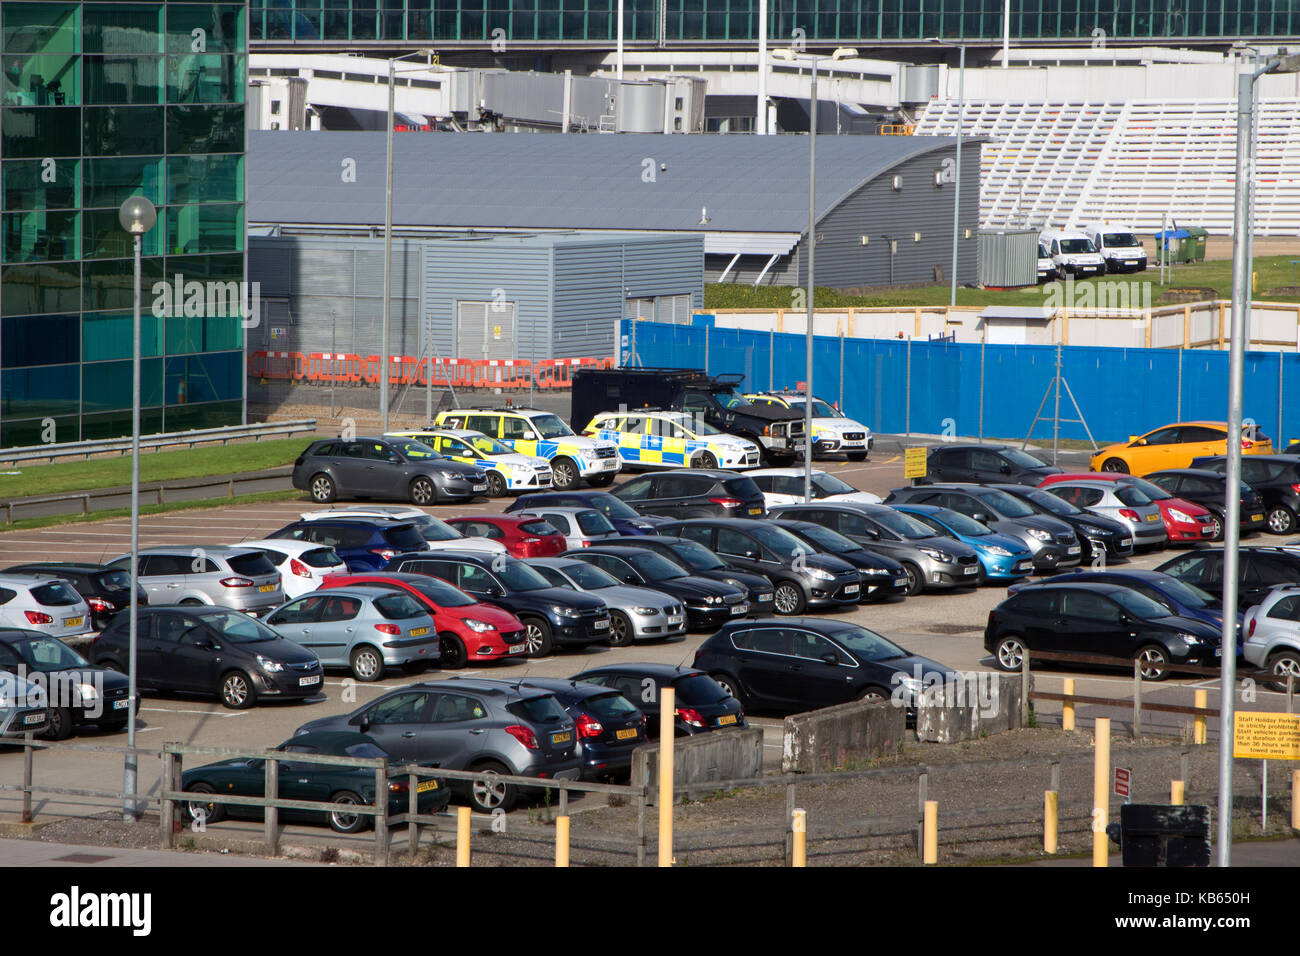 Airport parking uk stock photos airport parking uk stock images essex police vehicles amongst other cars parked at stansted airport stansted mountfitchet essex kristyandbryce Images